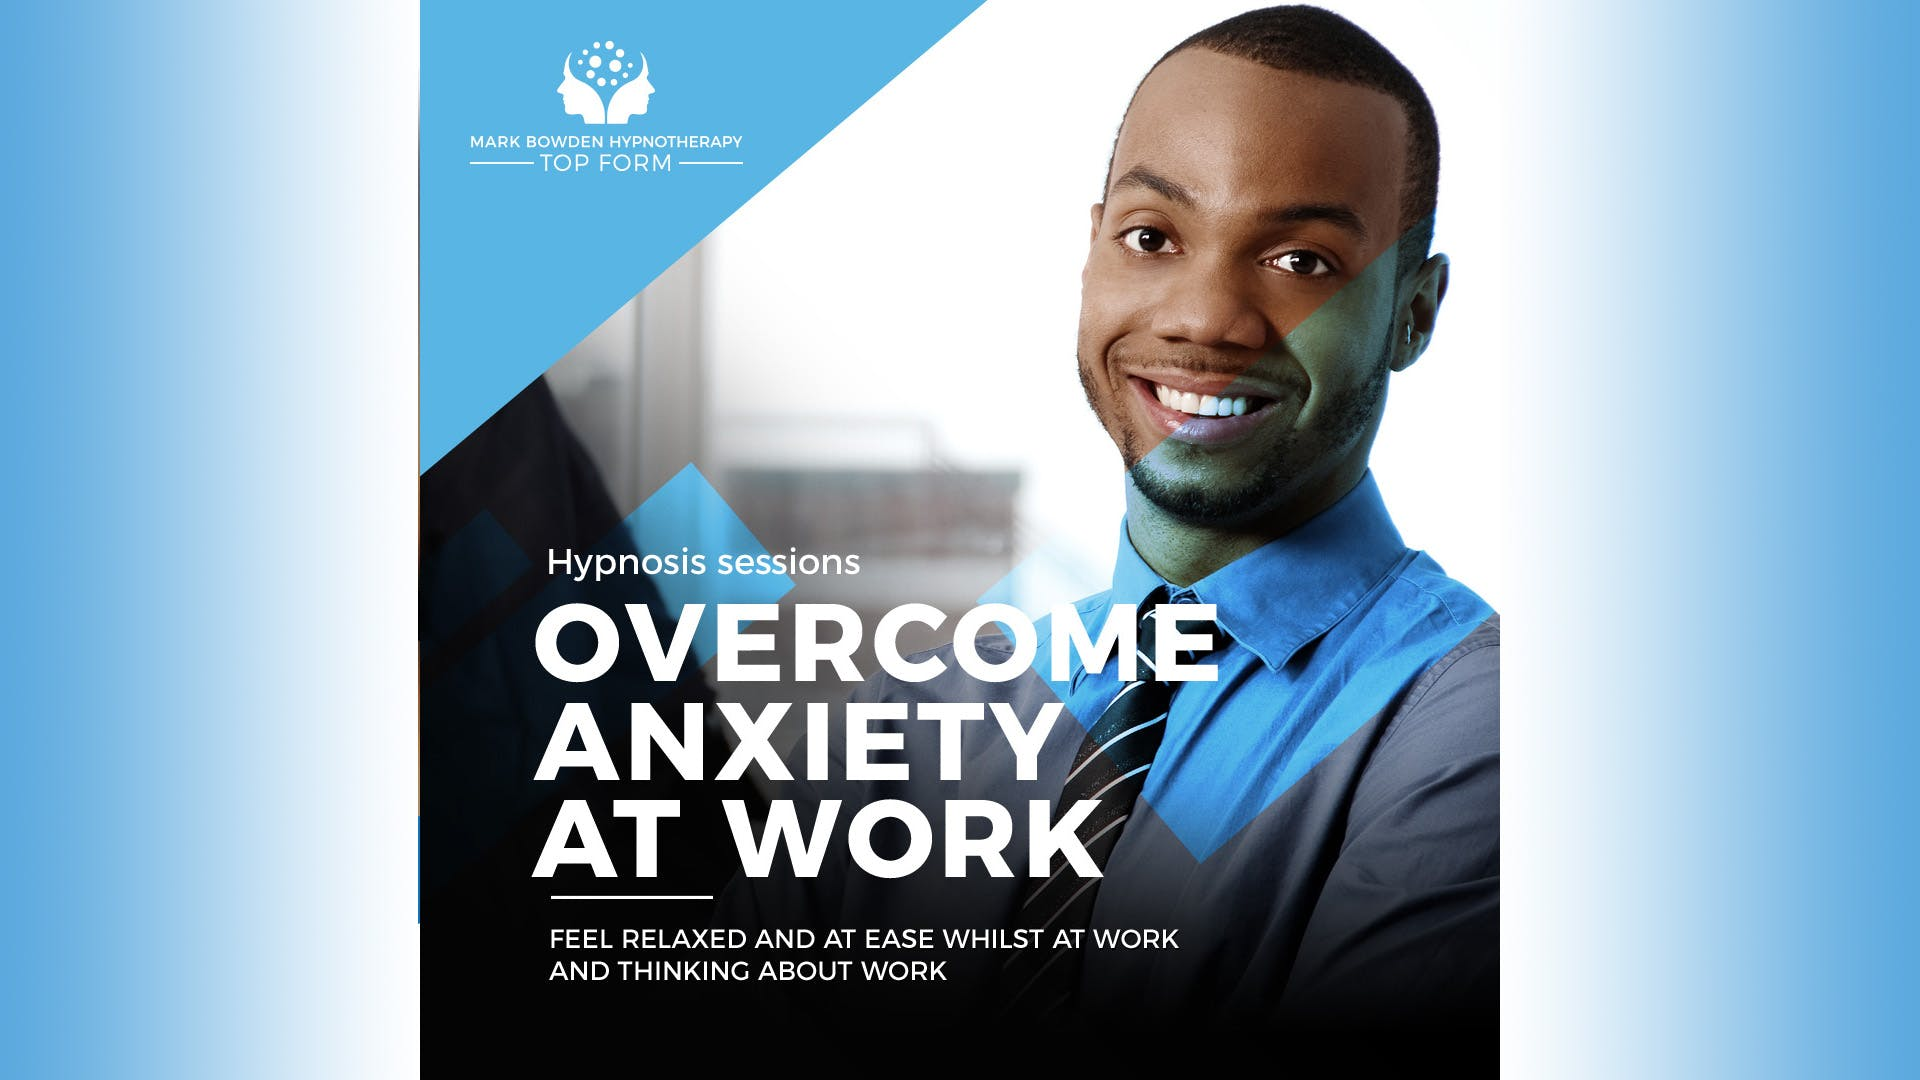 Overcome Anxiety at Work